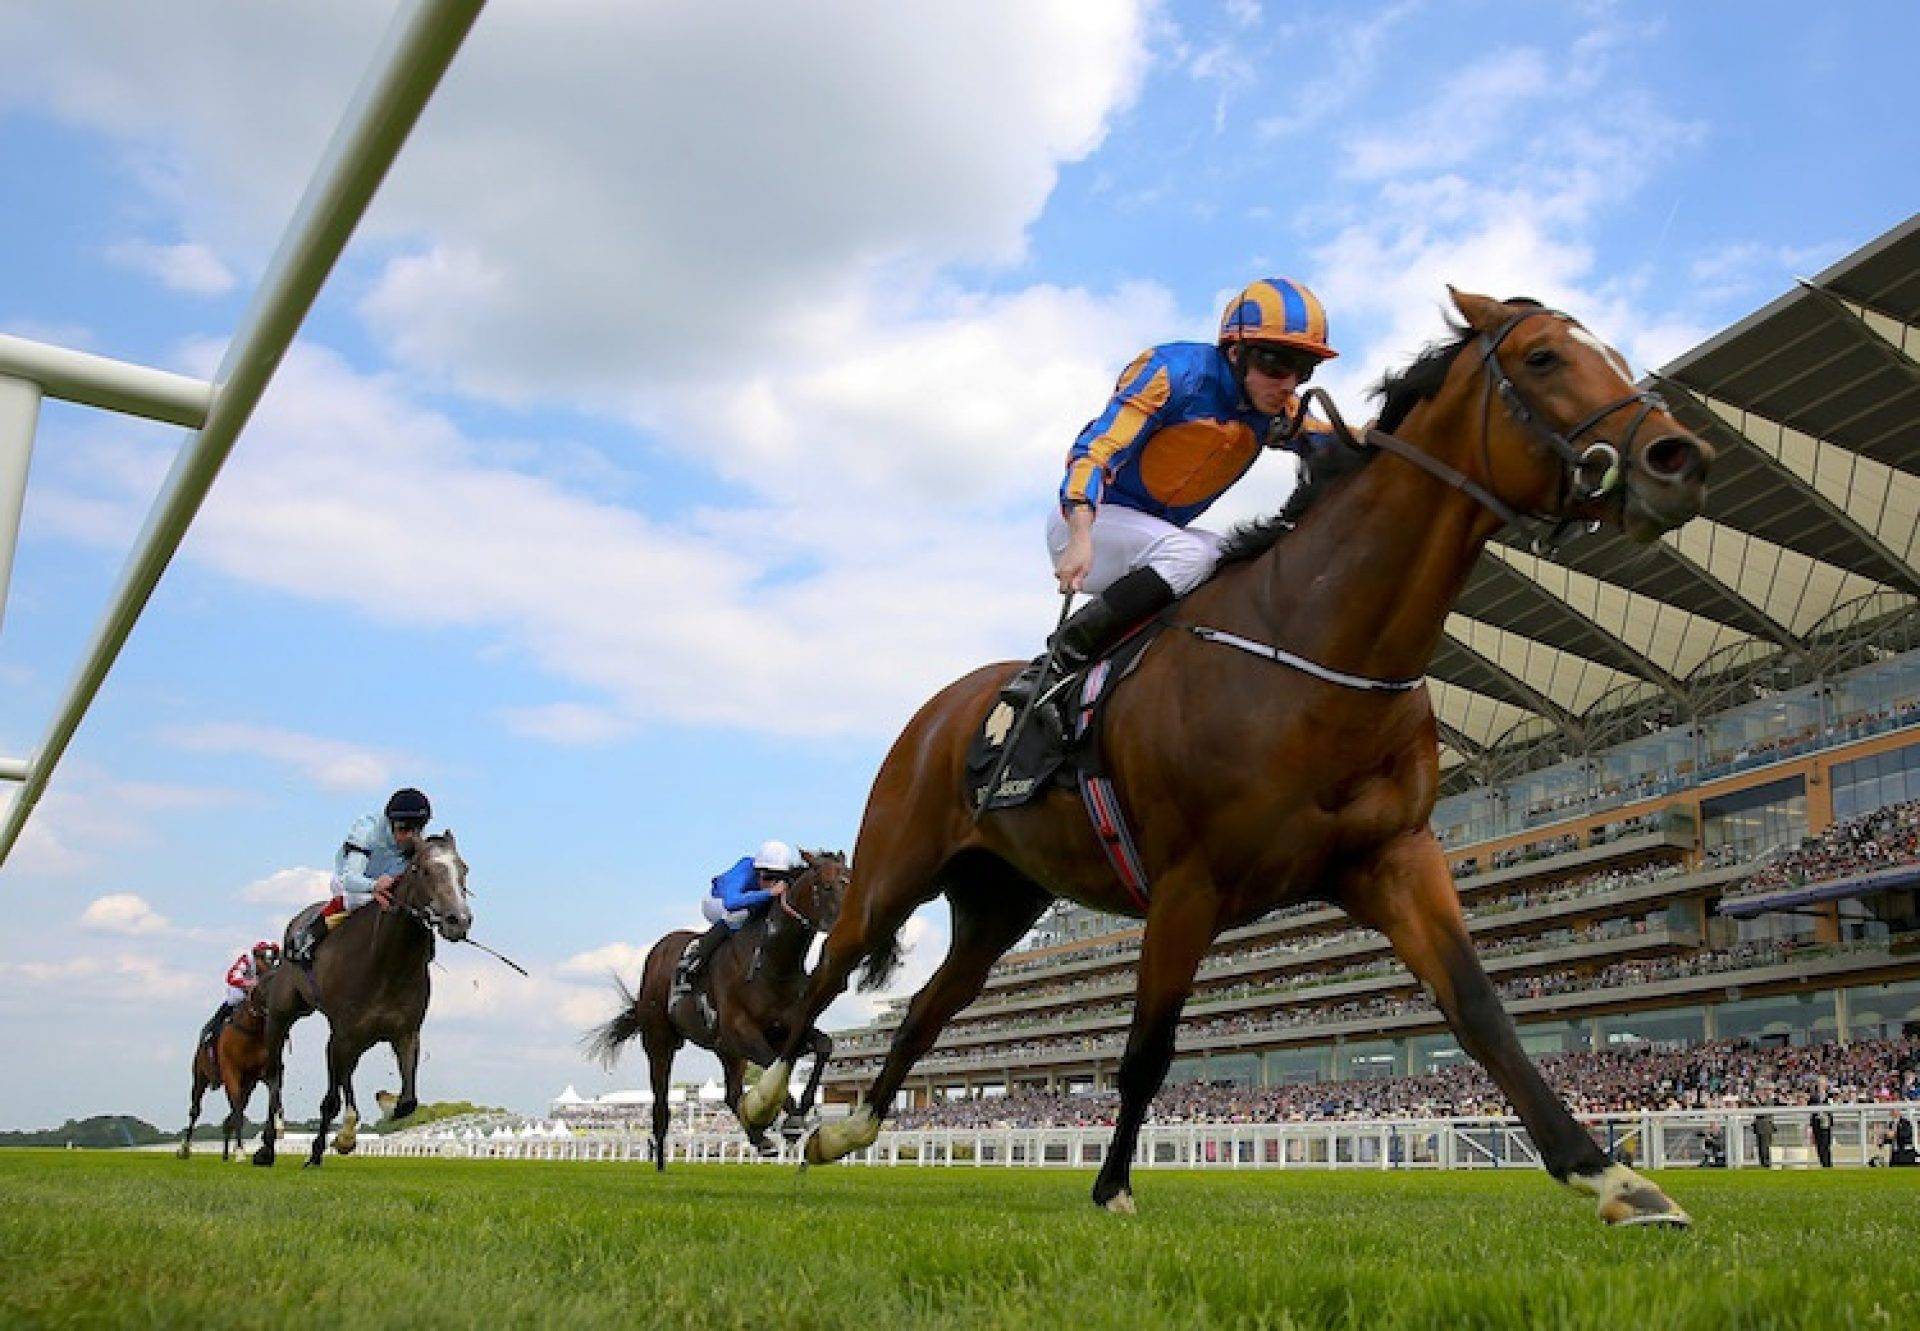 Gleneagles (Galileo) winning the G1 St James's Palace Stakes at Royal Ascot